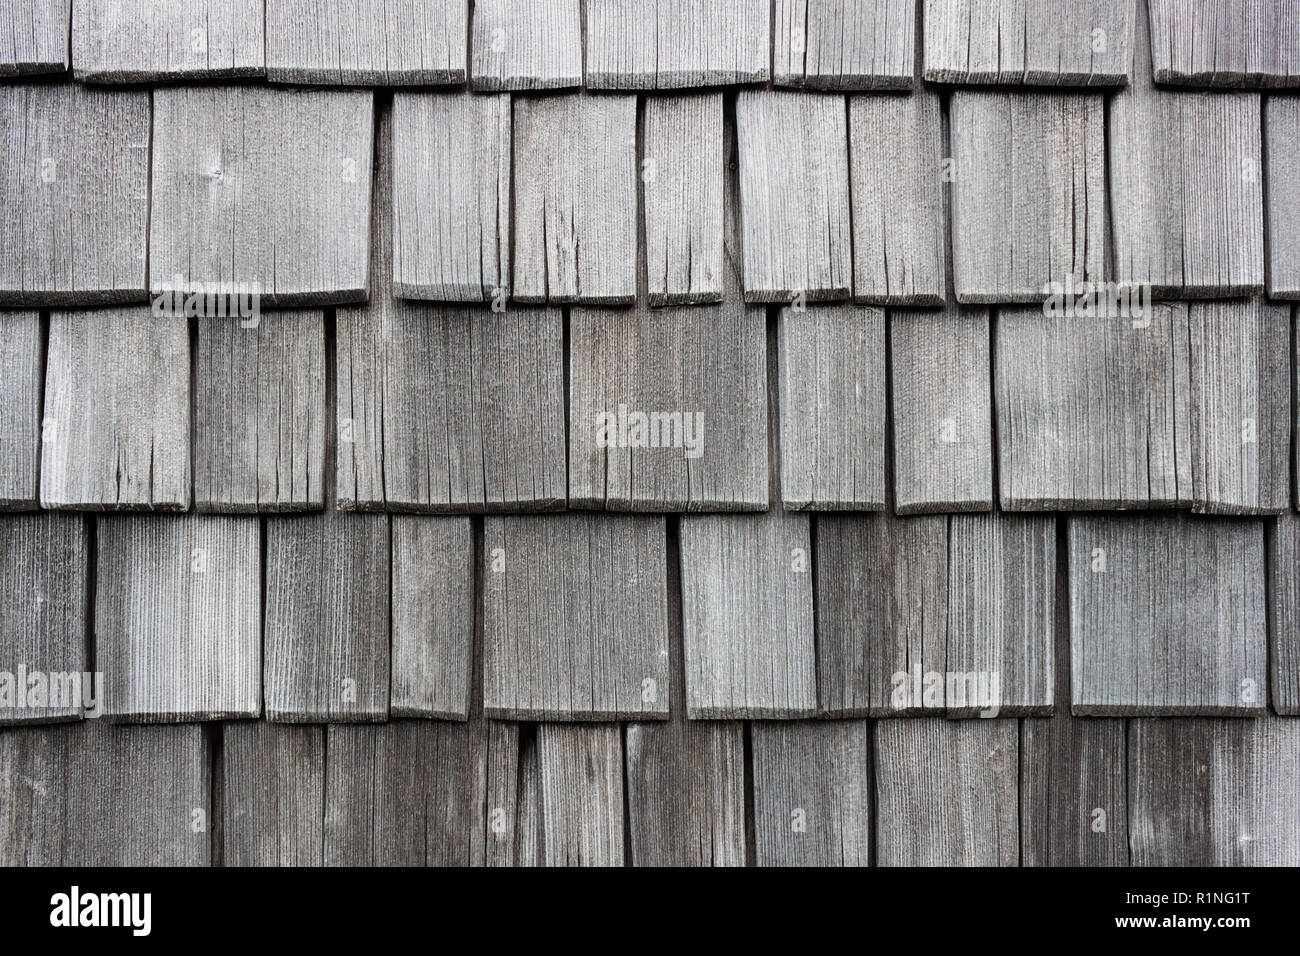 Wood shingle wall siding made of larch. Old, discolored and worn by weather shingles. Traditional austrian house siding. - Stock Image